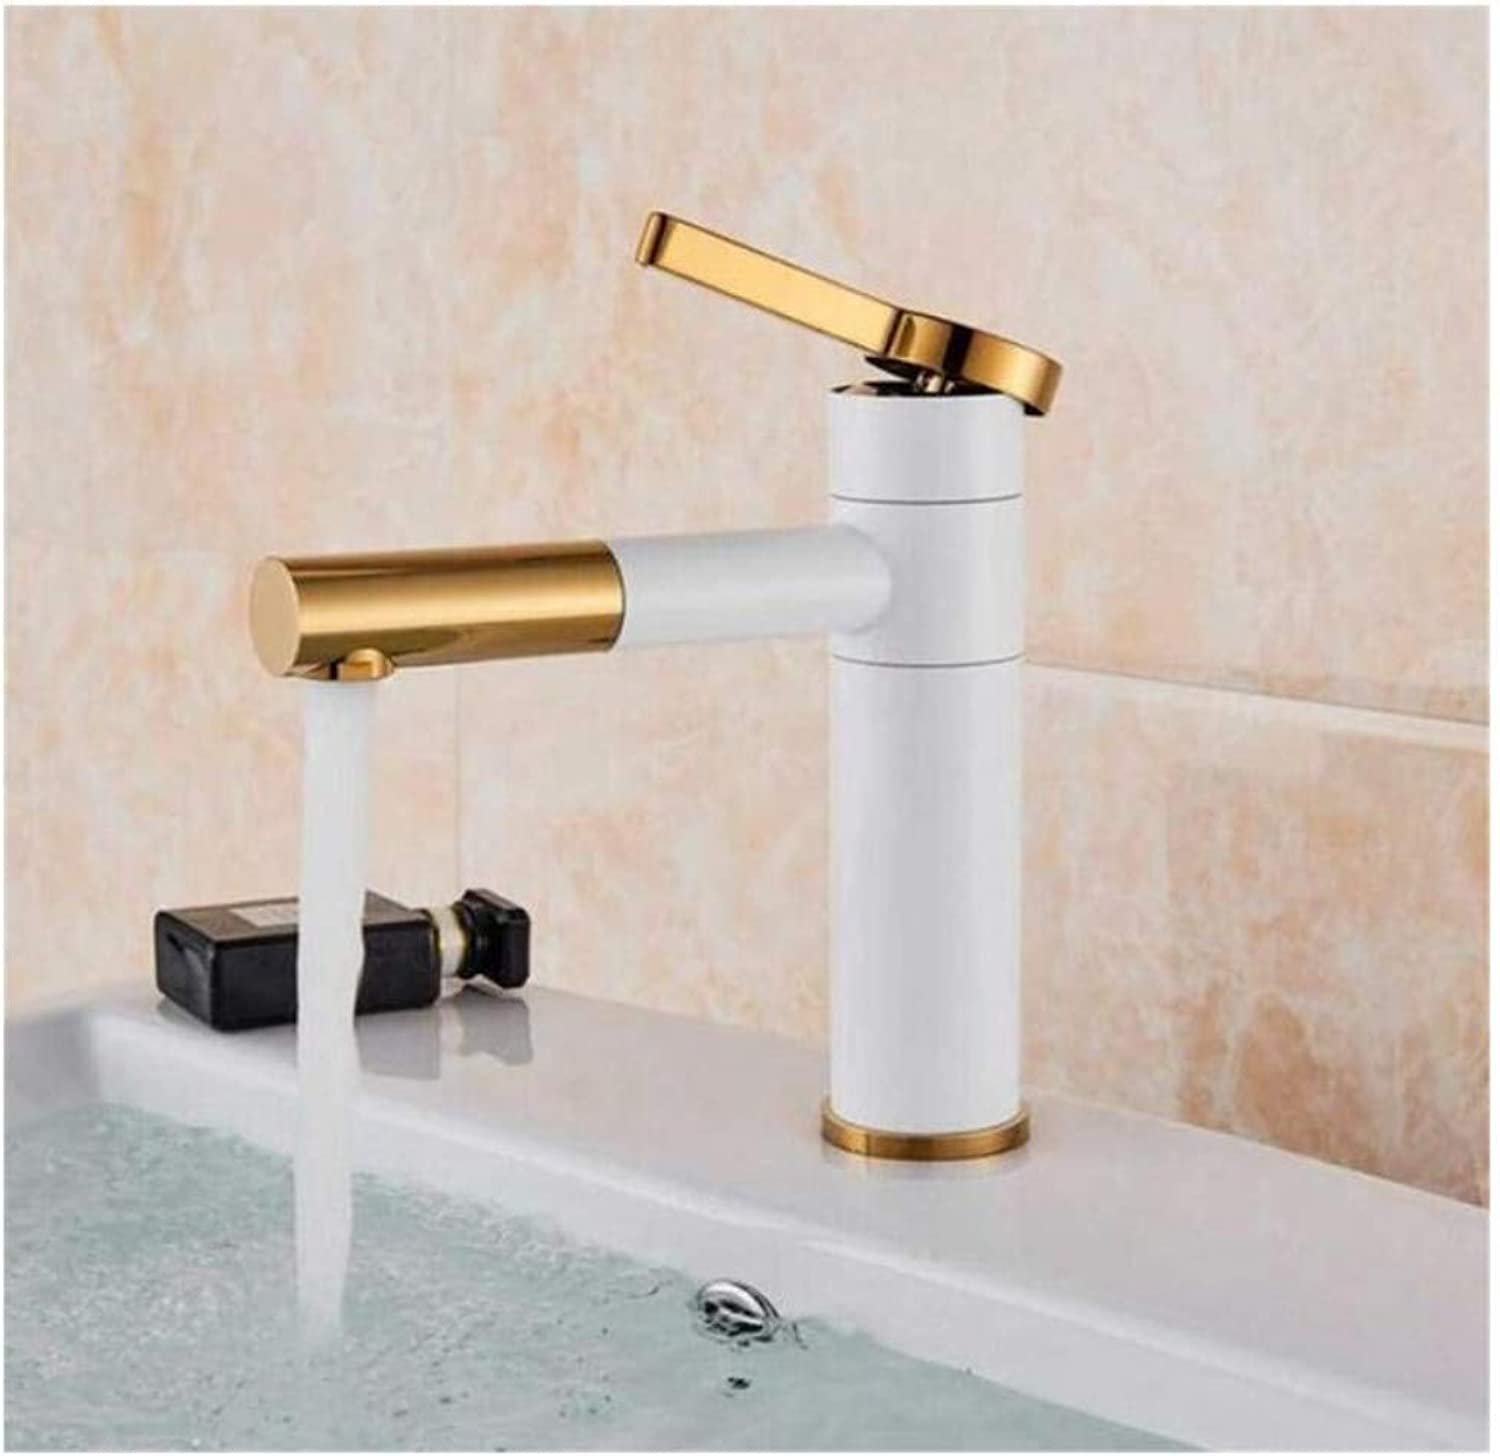 Chrome-Plated Adjustable Temperature-Sensitive Led Faucetbathroom Vessel Sink Mixer Taps Brushed Nickel